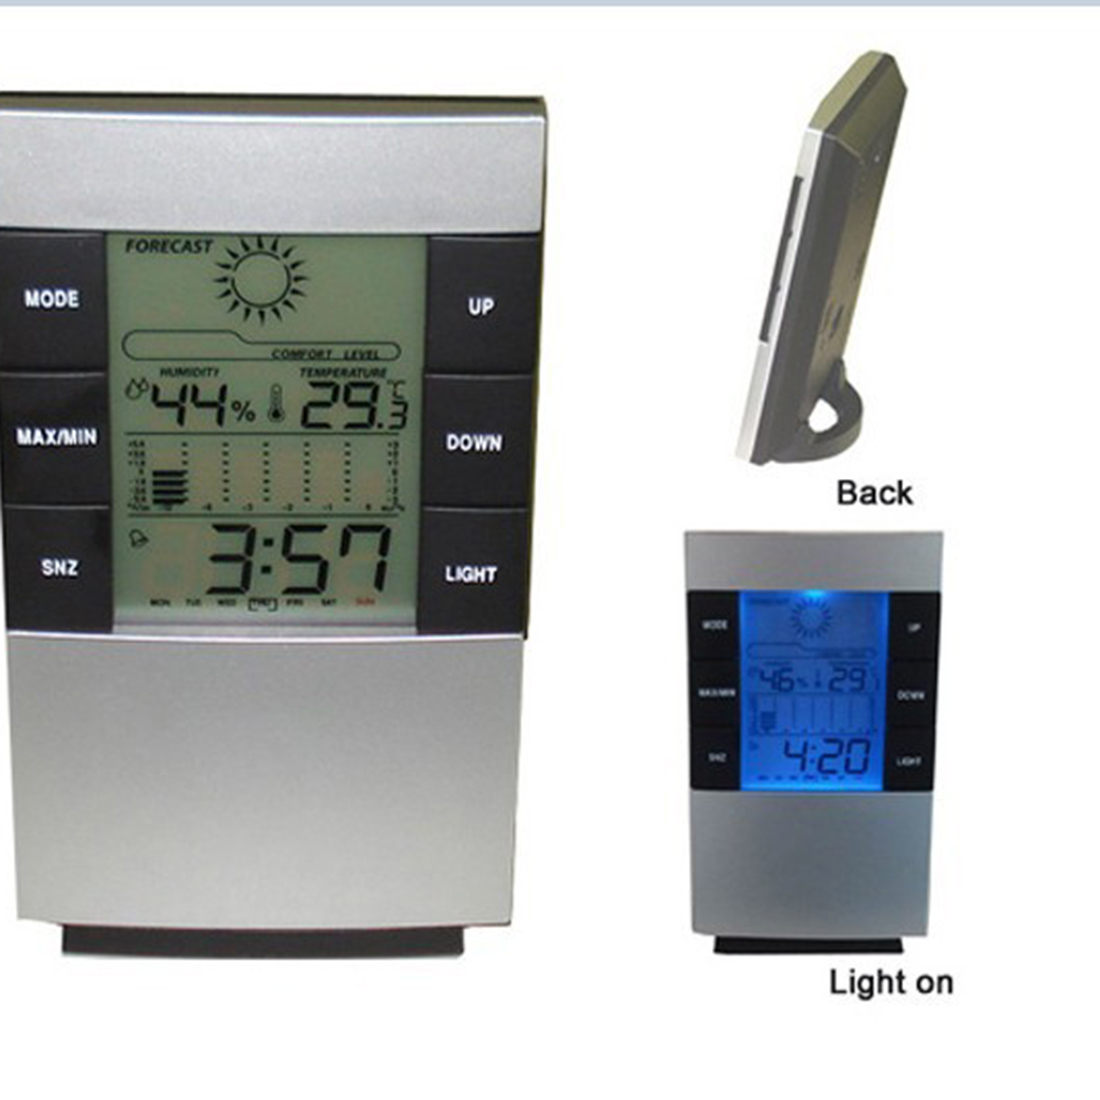 LCD Digital Thermometer High Accuracy Hygrometer Electronic Temperature Humidity Meter Clock Weather Station Indoor lcd digital temperature humidity moisture meter weather station indoor